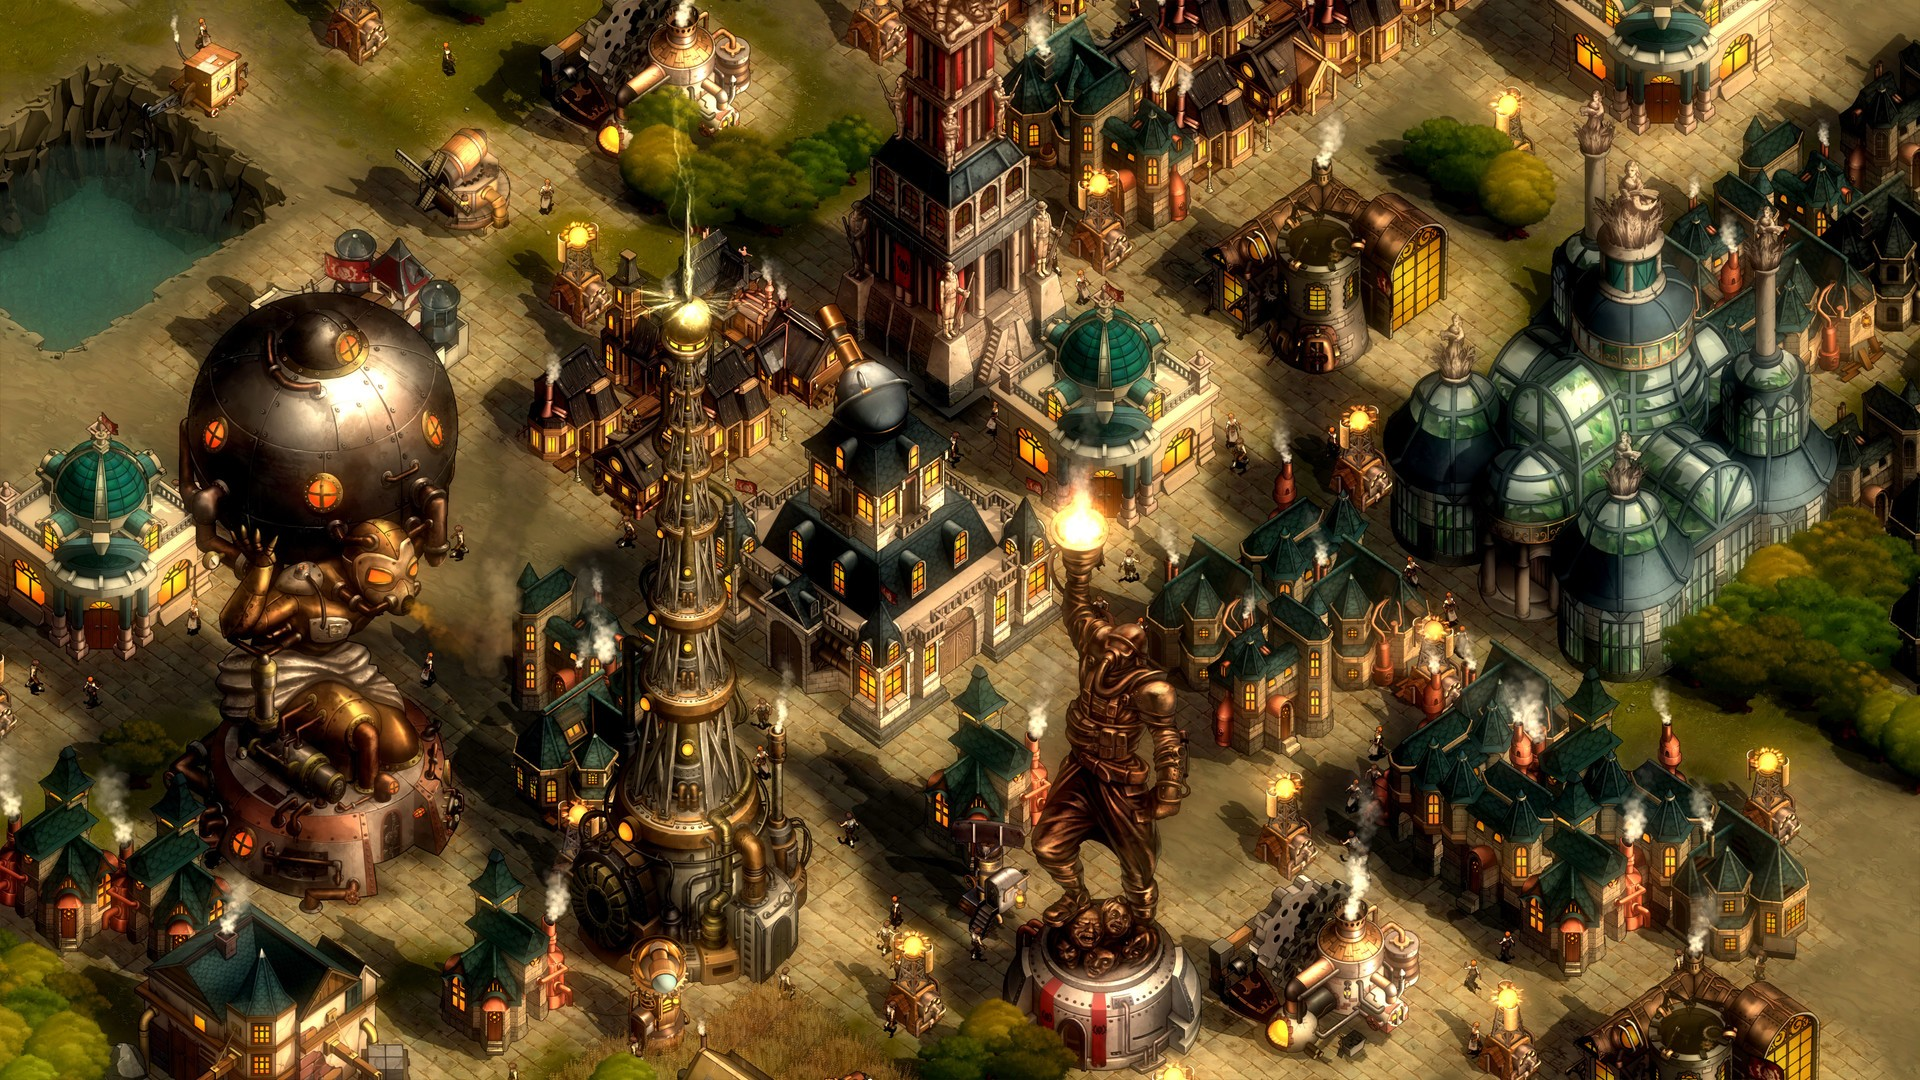 They Are Billions: Saving (The game was not completed completely, all research was pumped over)